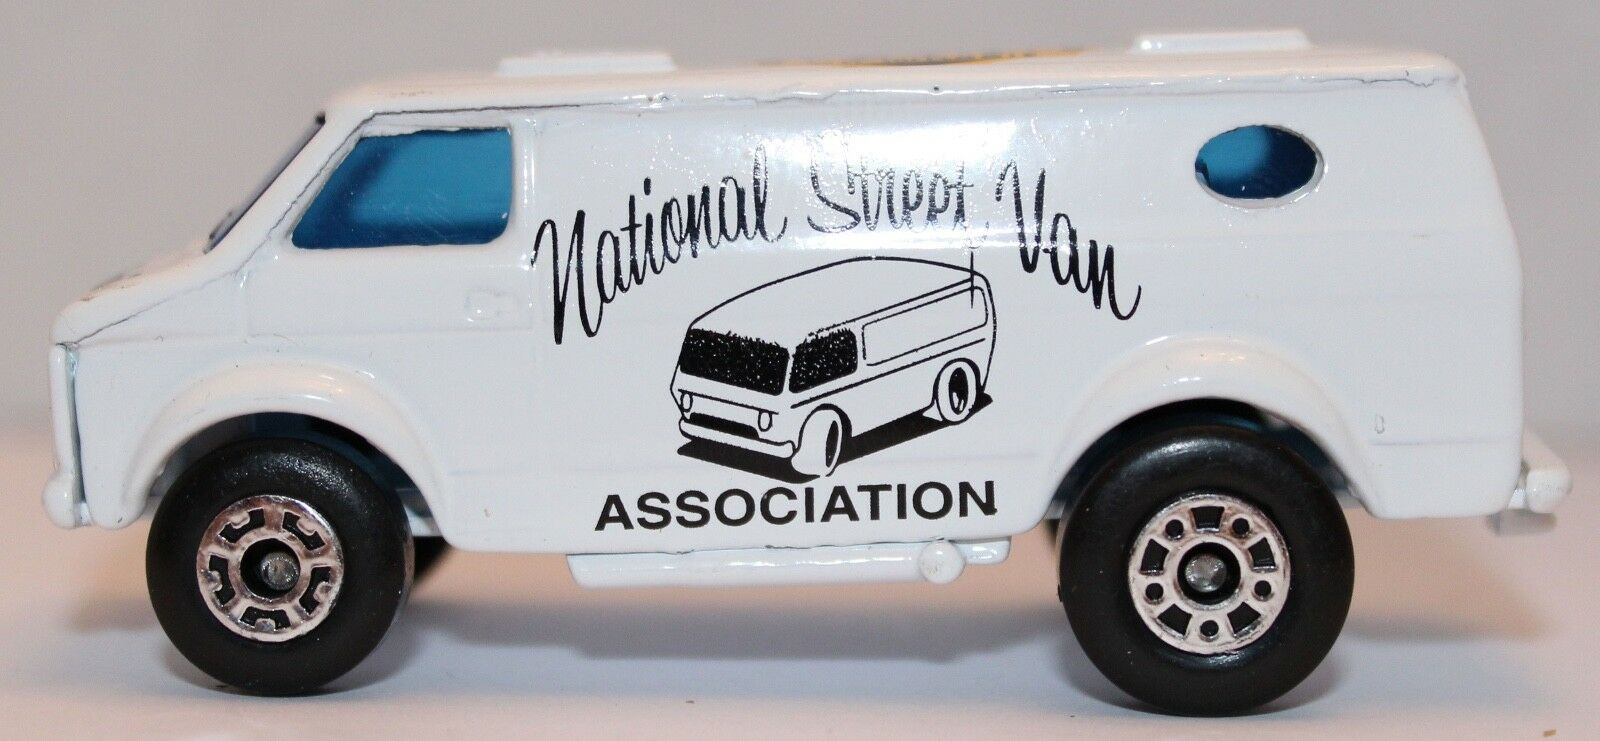 Matchbox chevy Committee van promoting the NSVA Mint perfect Boxed.